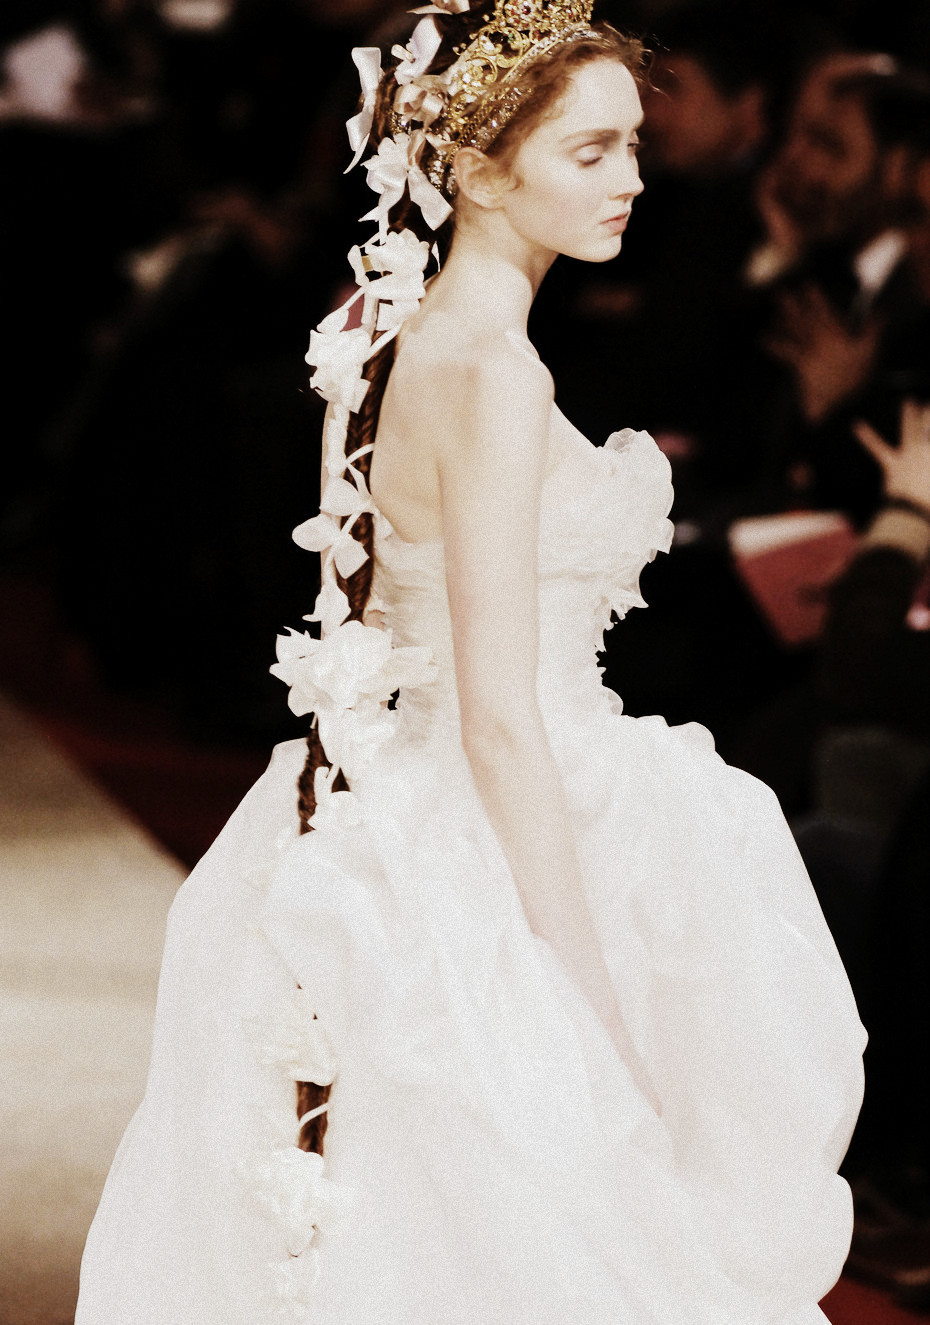 Lily Cole for Christian Lacroix Haute Couture Spring/Summer 2006